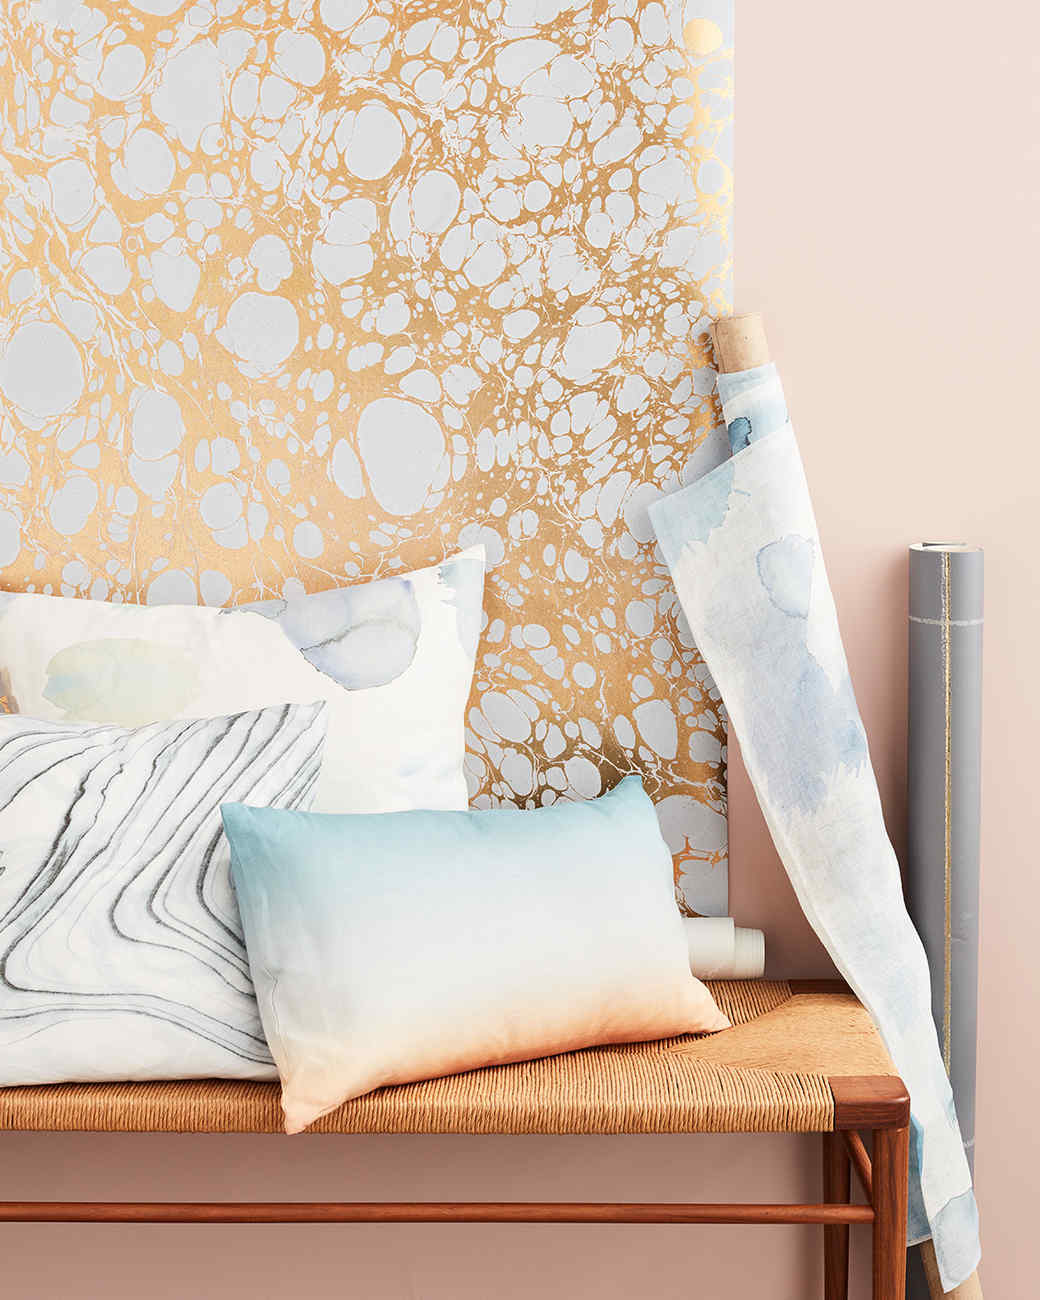 calico wallpaper and pillows on bench